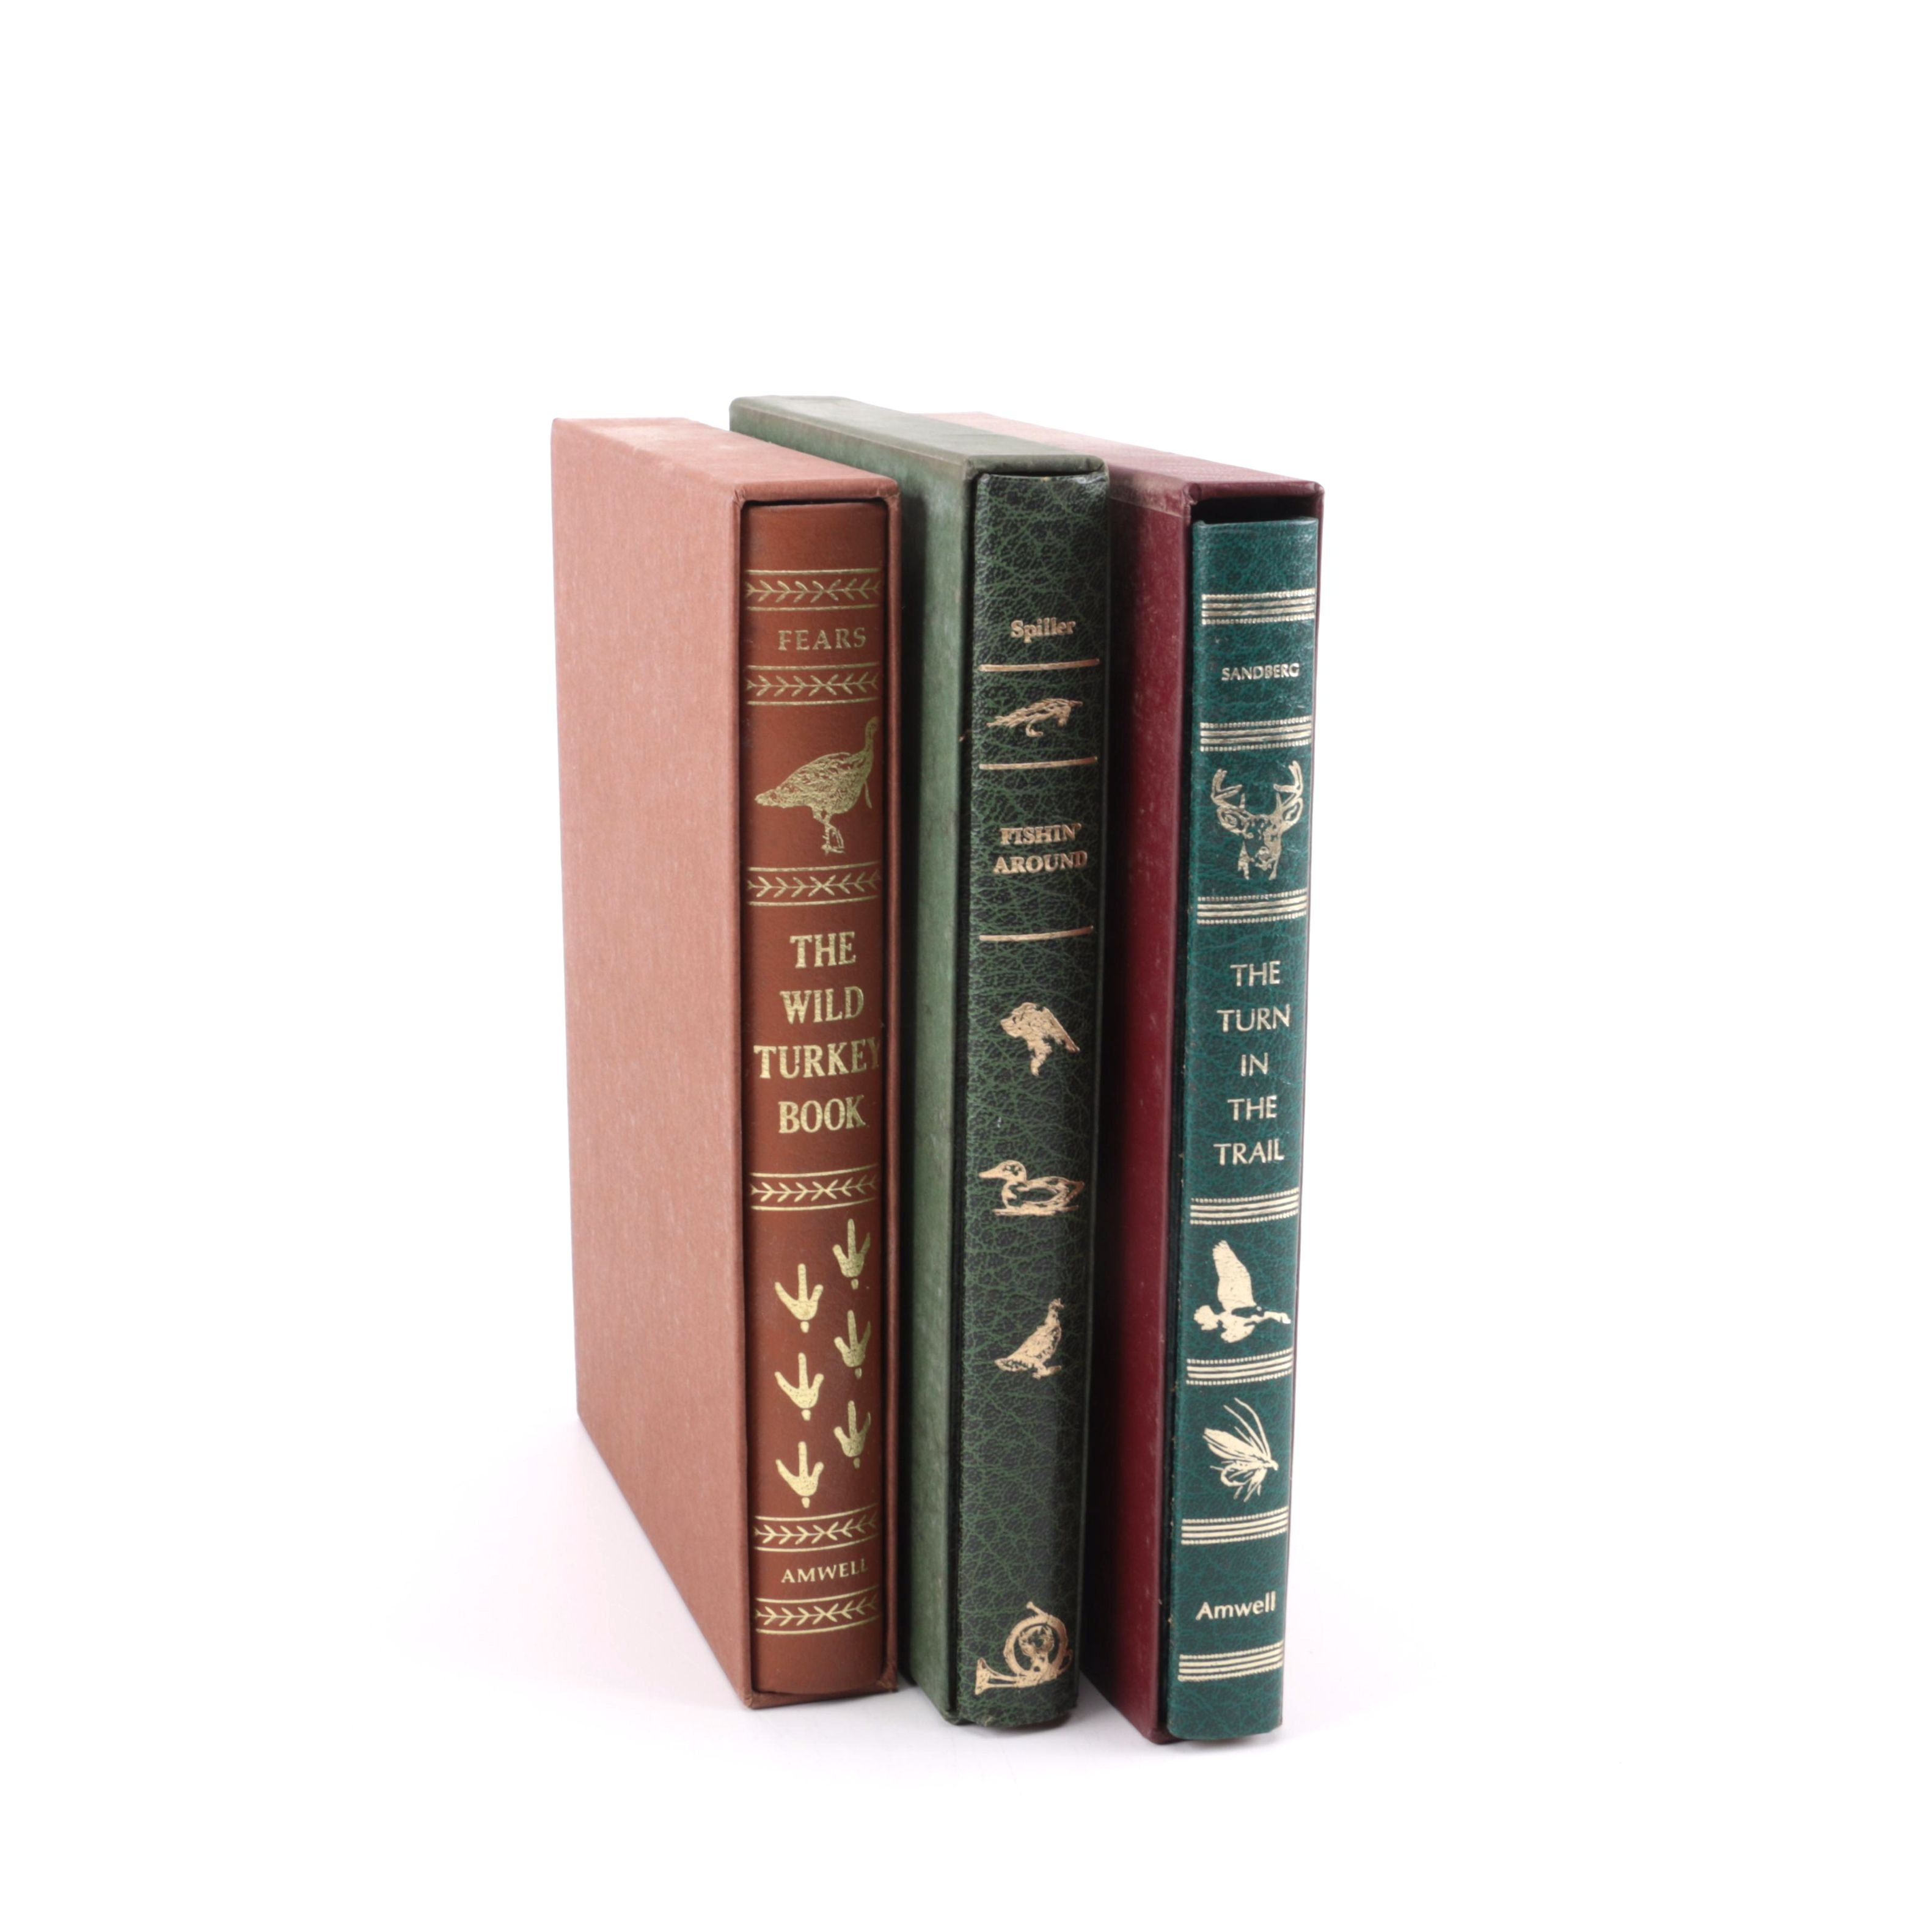 Amwell Press Leather Bound Editions of Hunting, Fishing and Nature Books